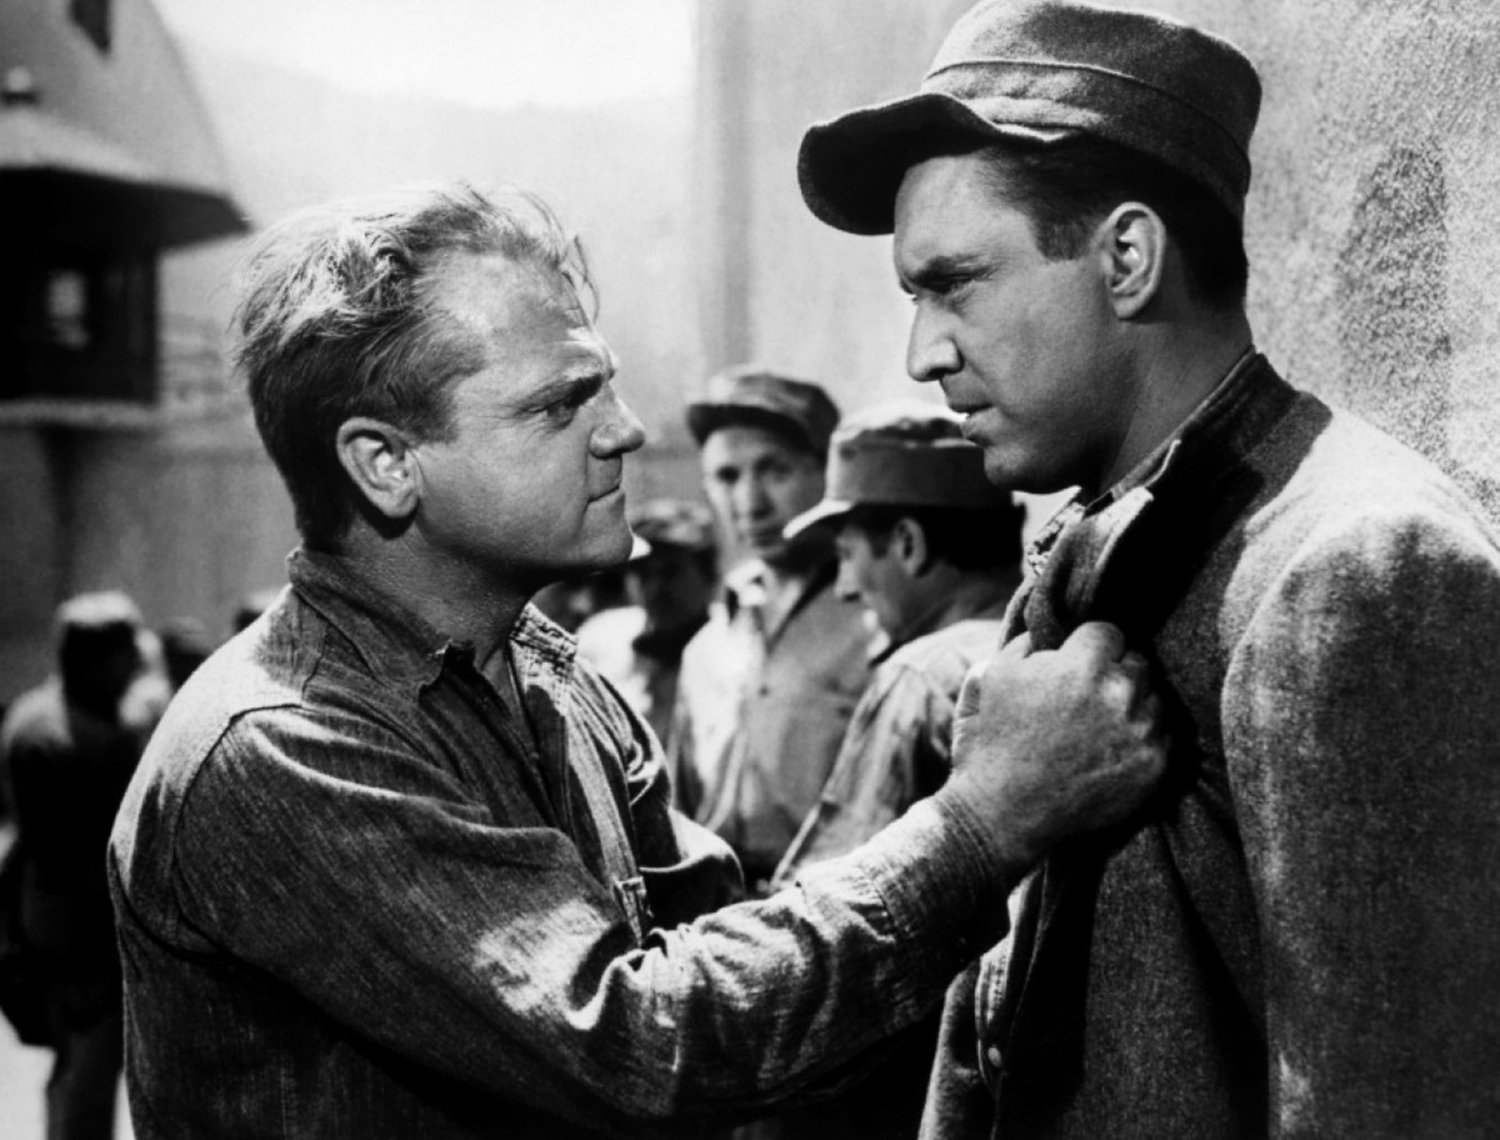 (From left) James Cagney, Edmond O'Brien